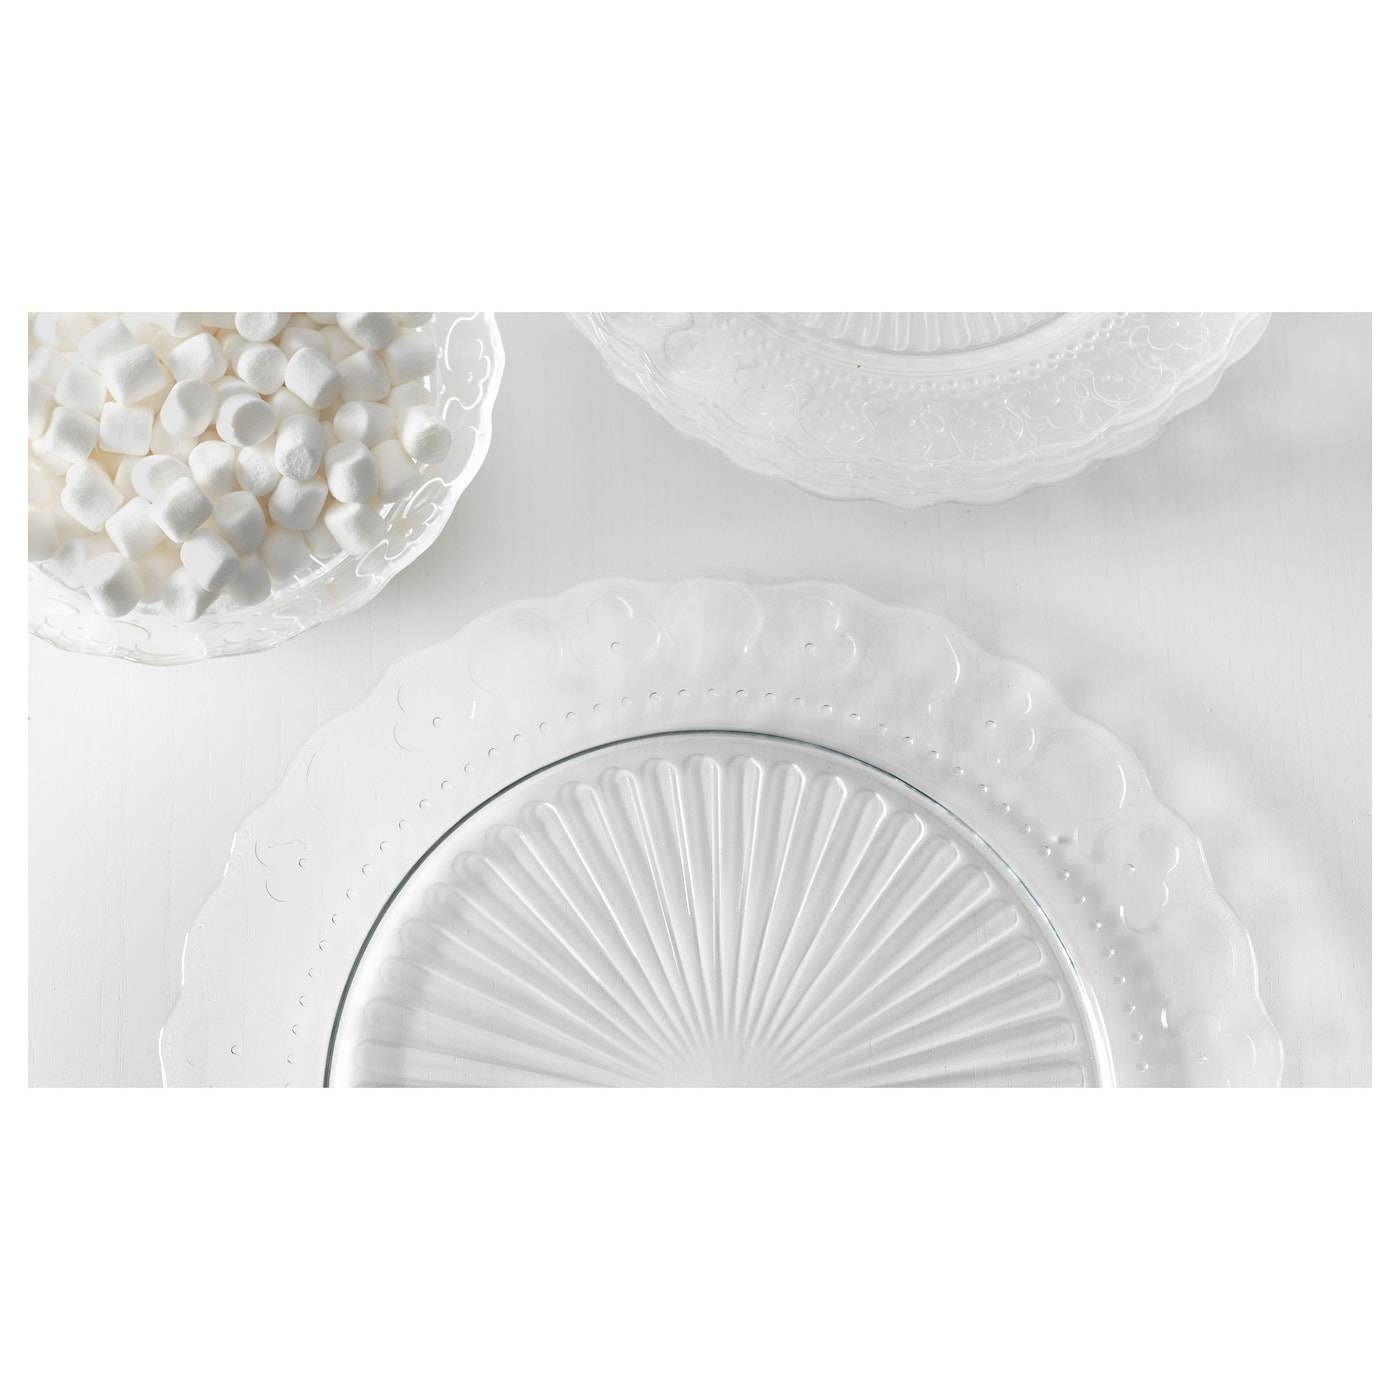 IKEA FRODIG side plate Matches well with other dinnerware and materials.